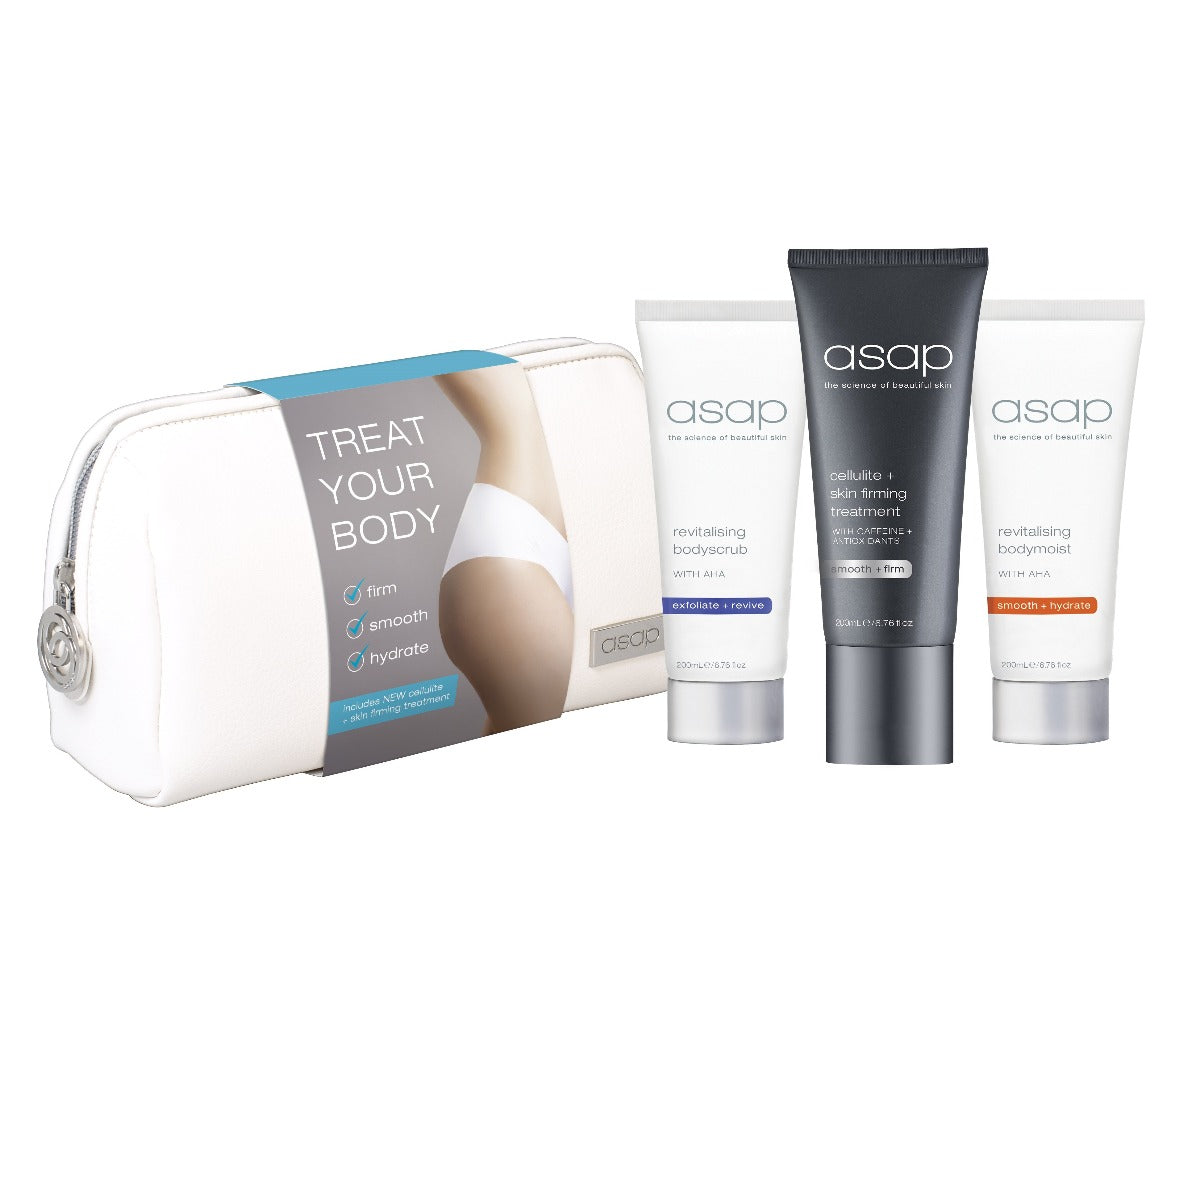 ASAP Treat Your Body Gift Set